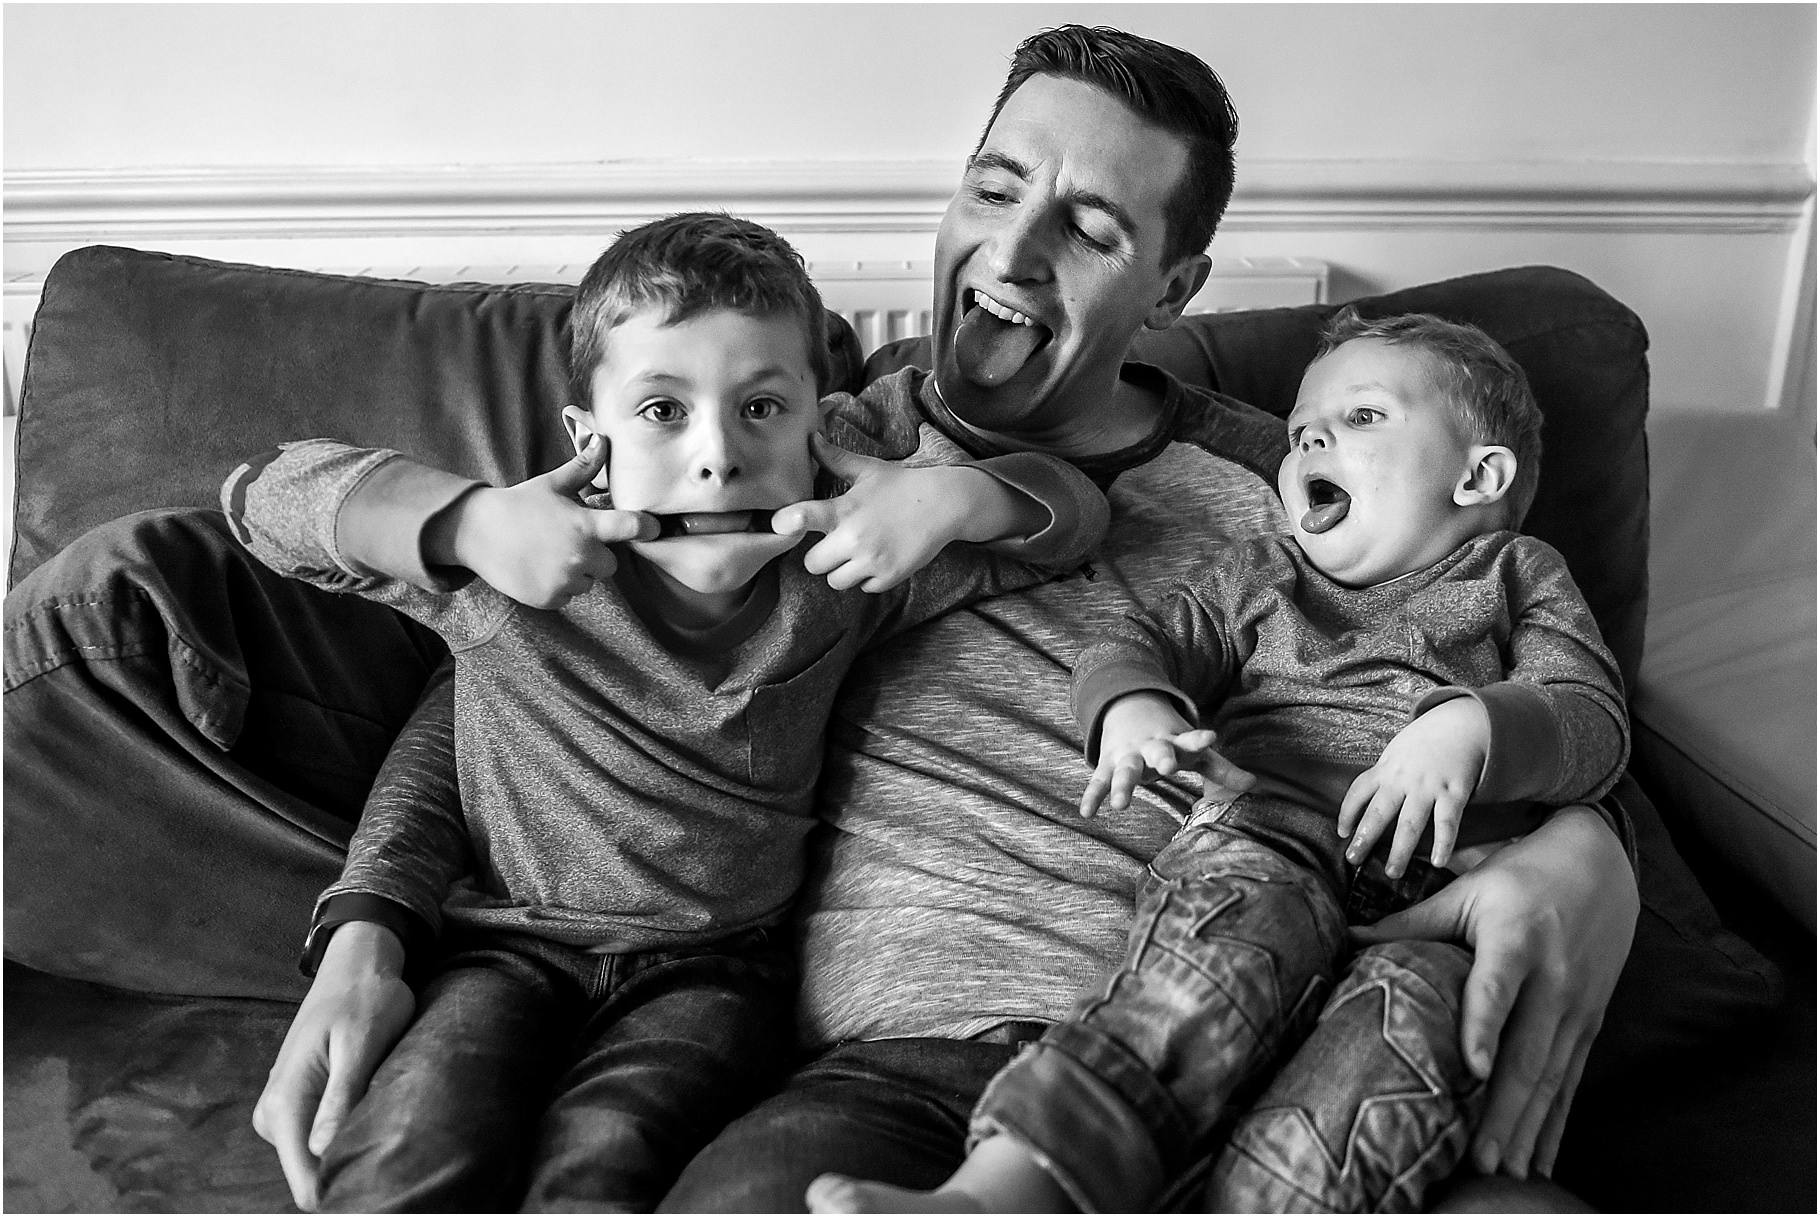 lancashire-family-photography-steve-april-jack-ollie-theo-84.jpg